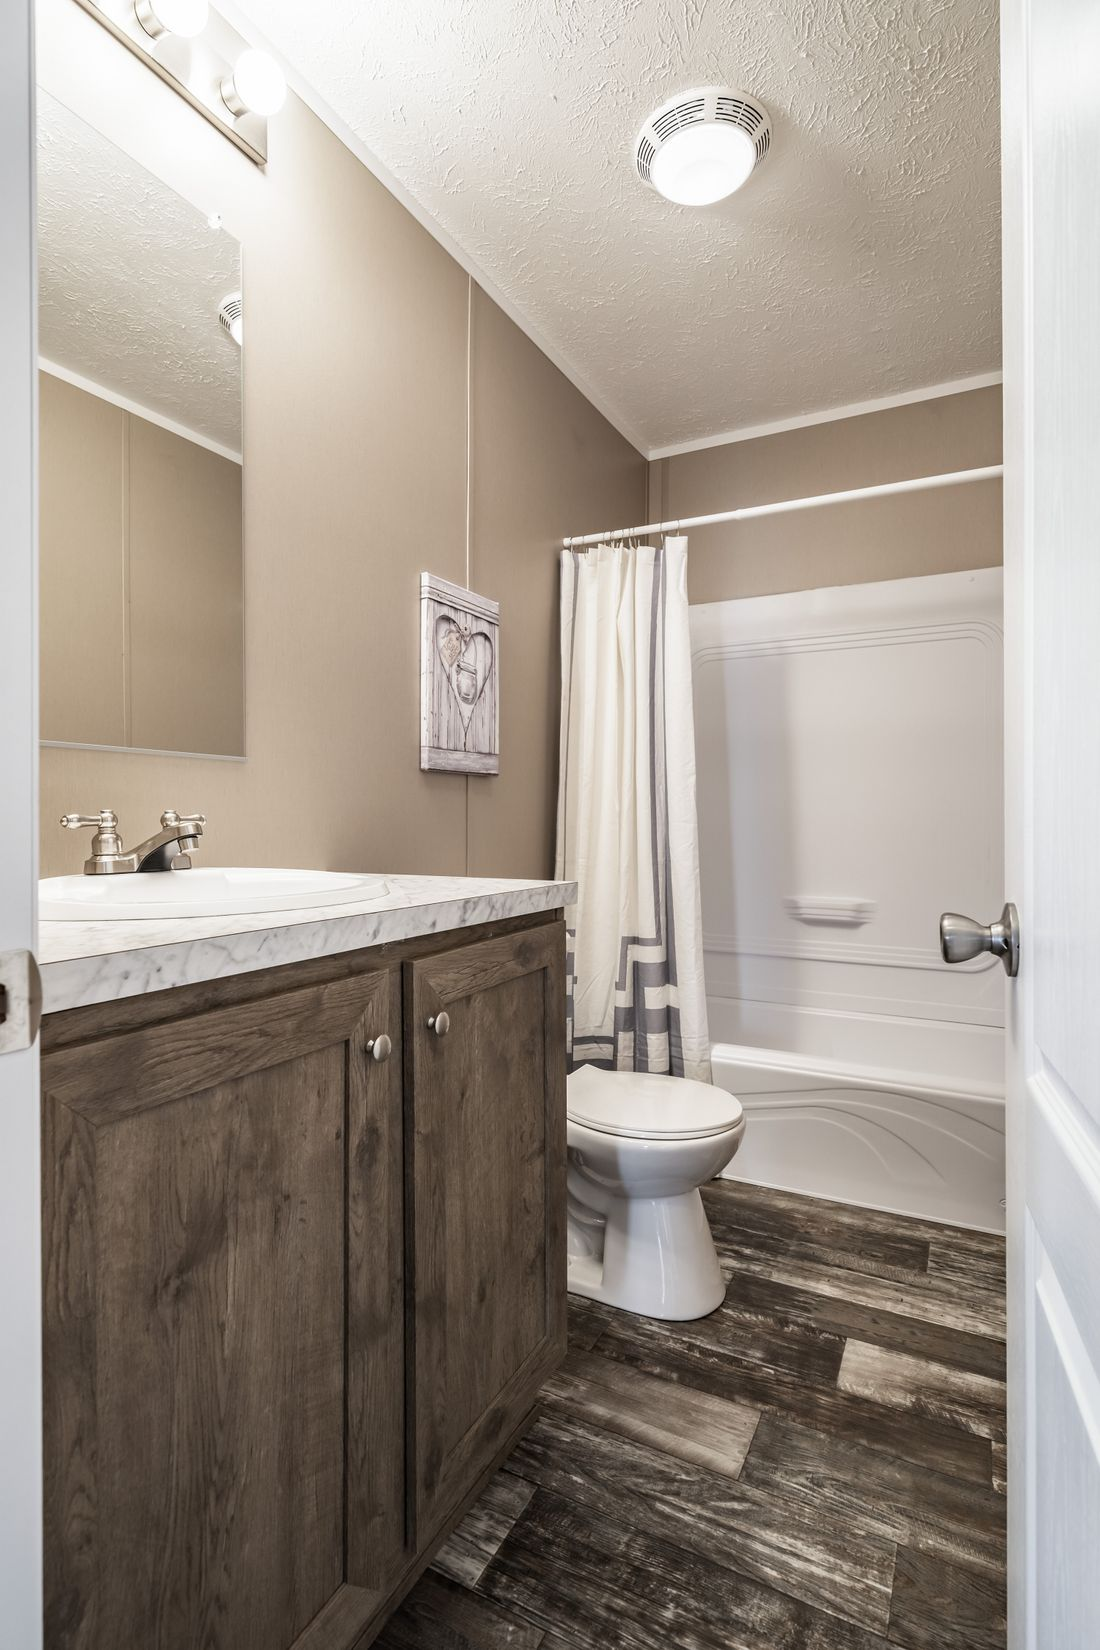 The ULTRA PRO 52 Guest Bathroom. This Manufactured Mobile Home features 3 bedrooms and 2 baths.